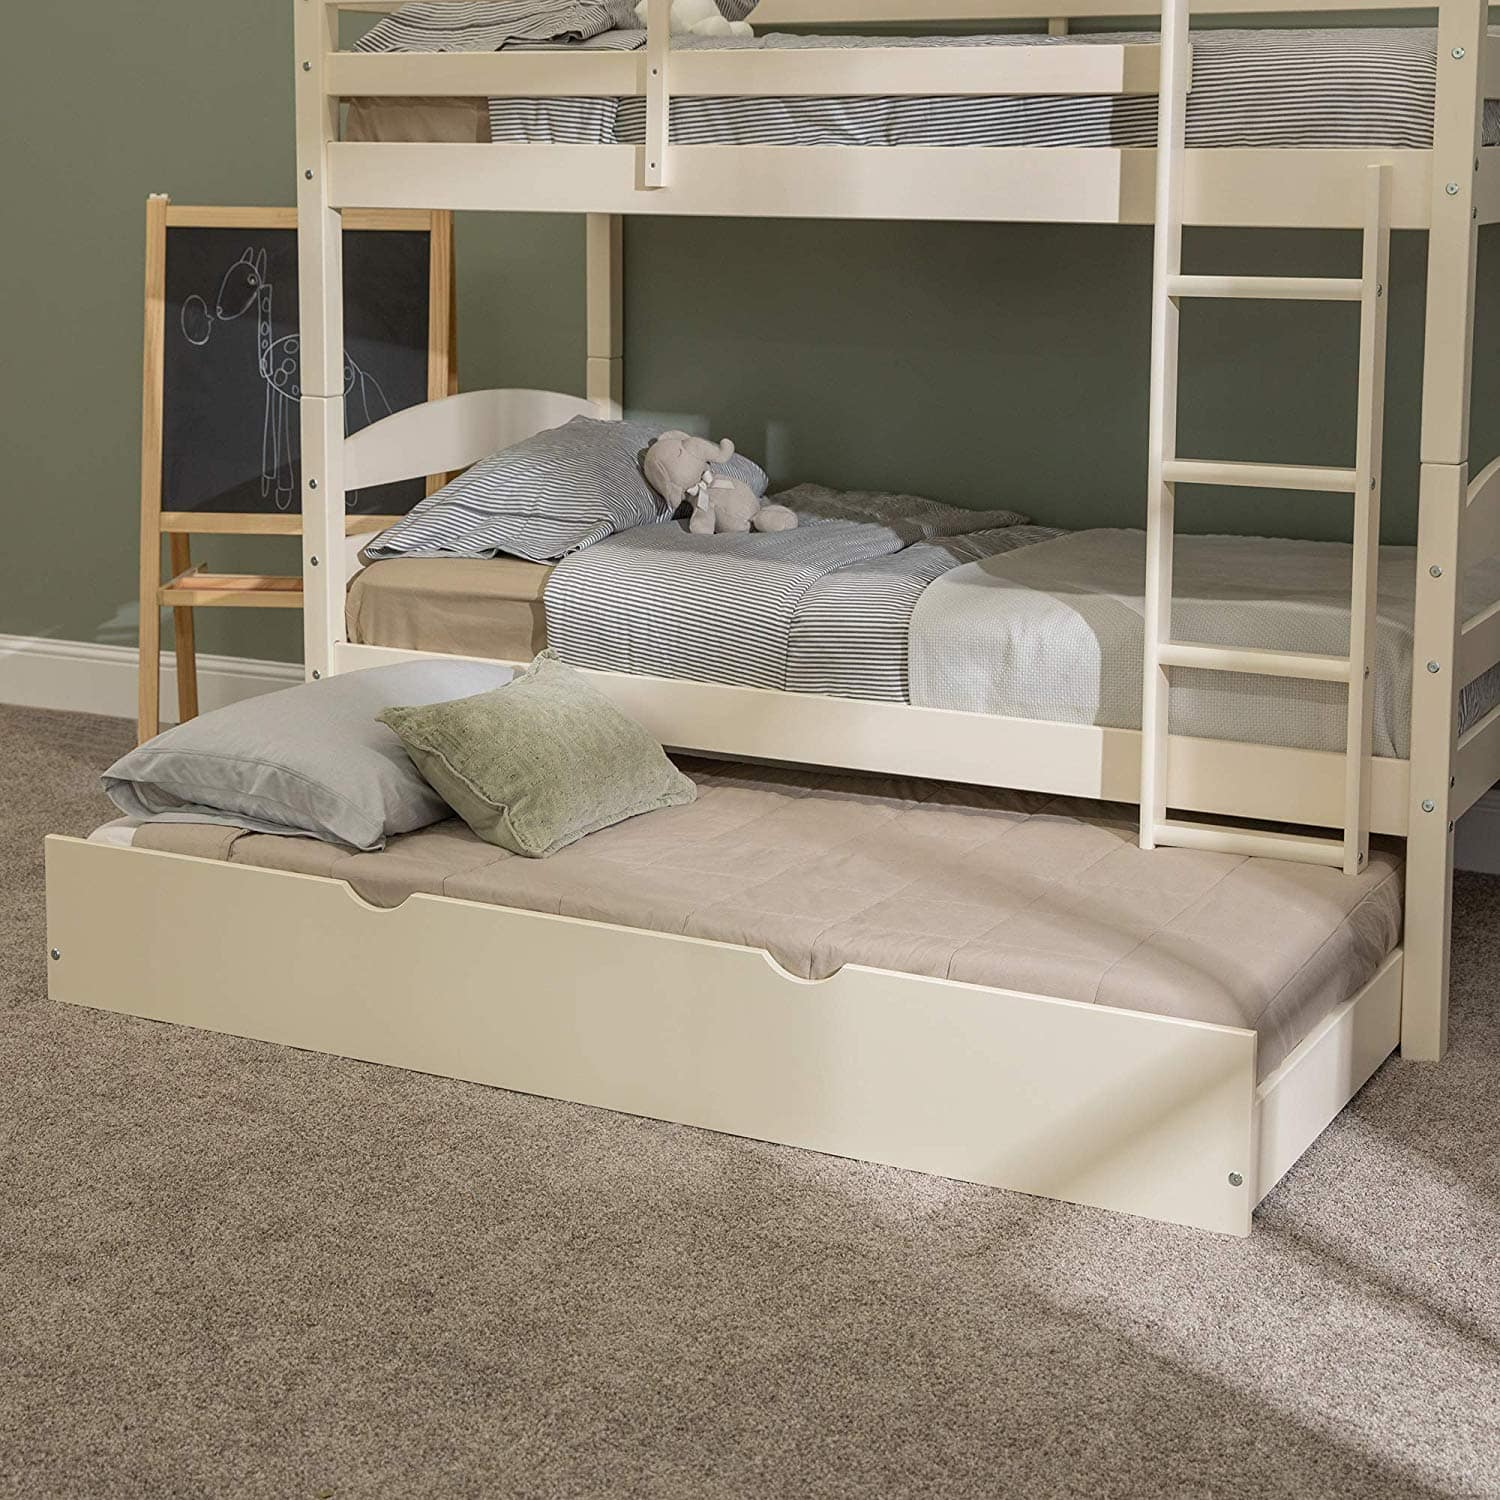 """Twin """"Trundle"""" Solid Wood Kids Bed Frame With Wheels (White) $116.00 - Amazon"""